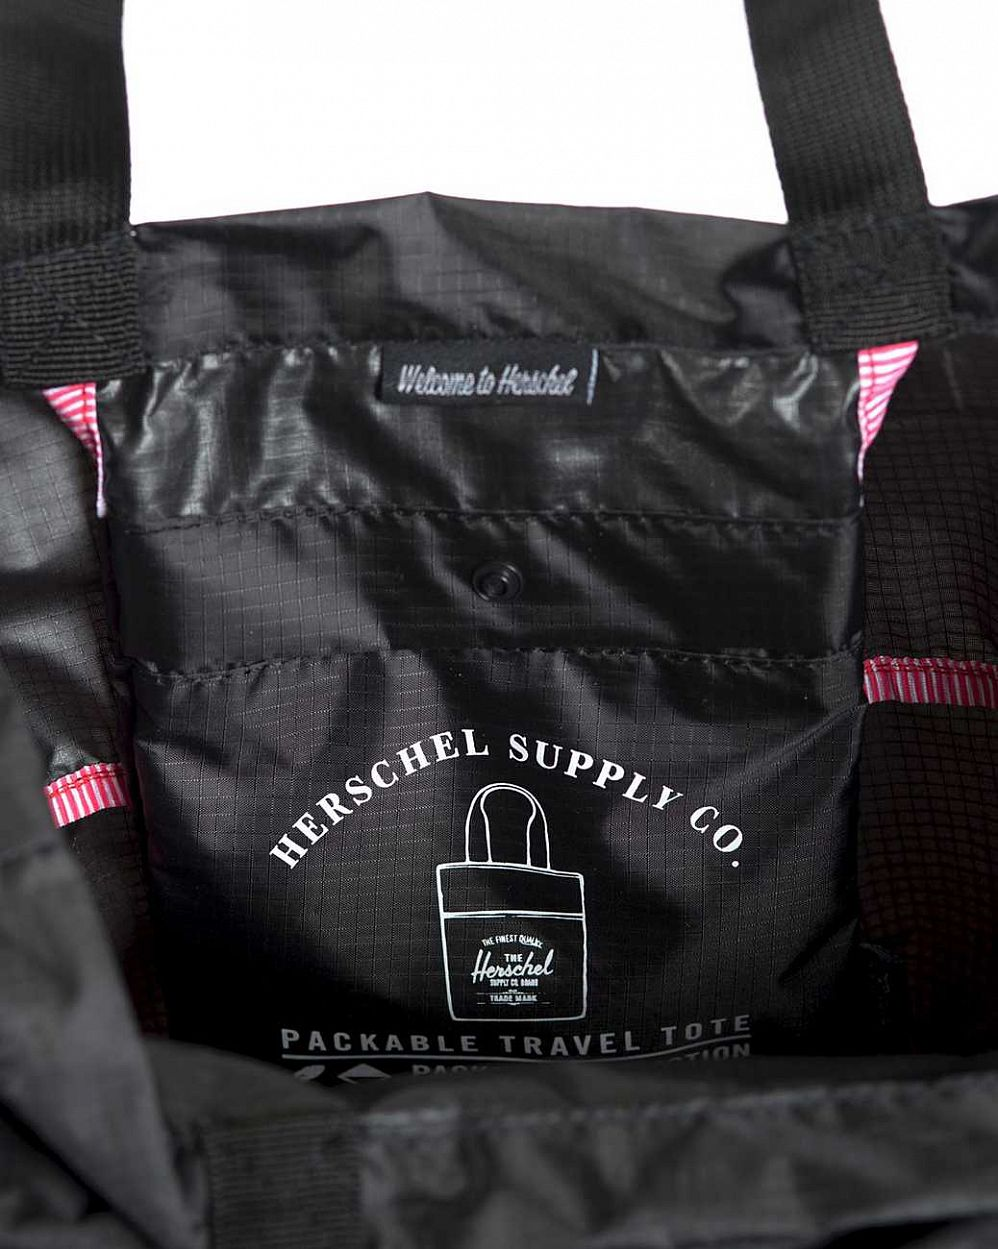 Сумка складная Herschel Packable Travel Tote Bag Black отзывы